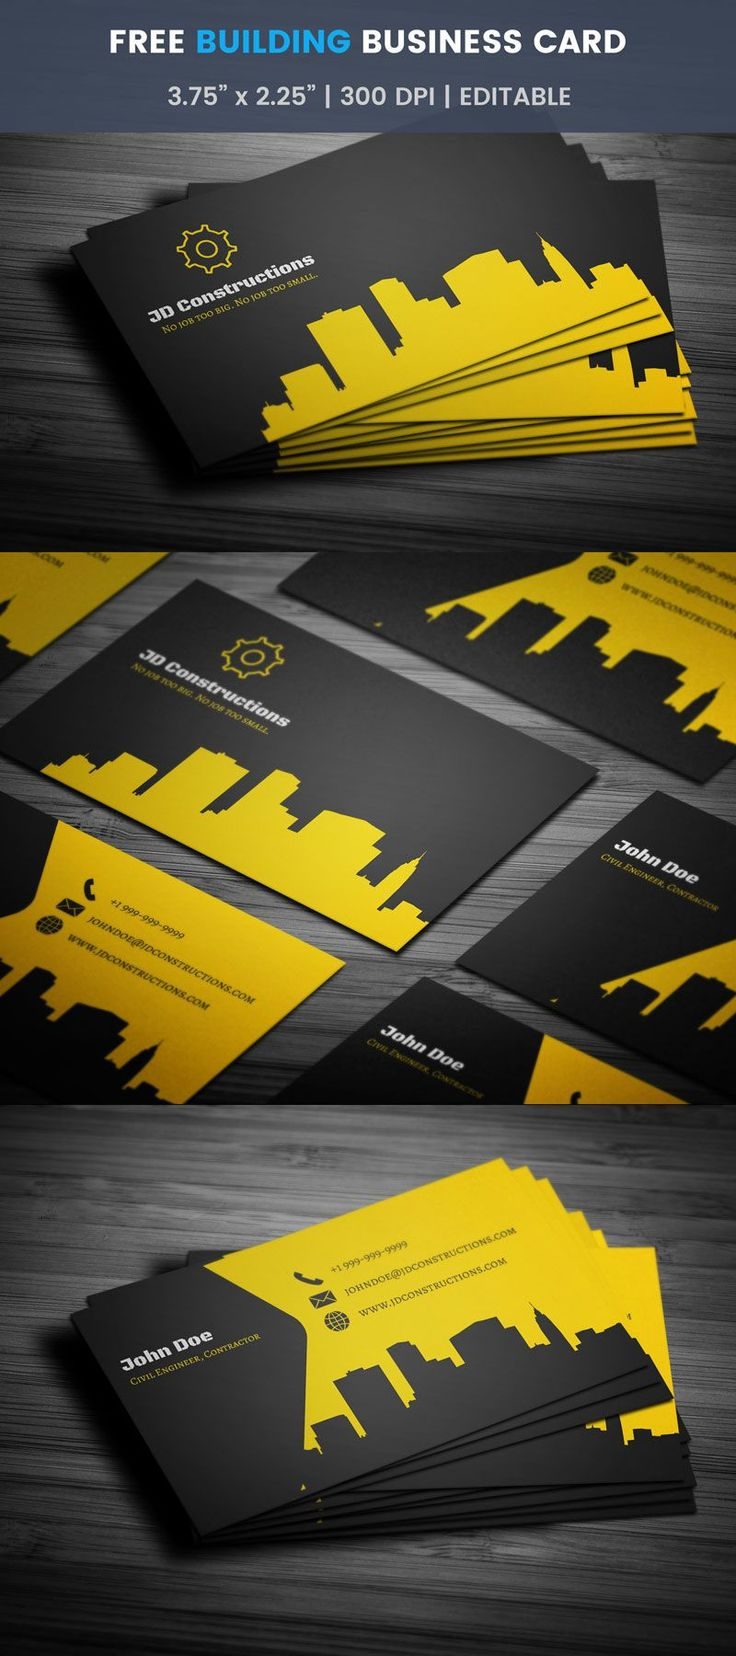 Free construction business card template word visiting